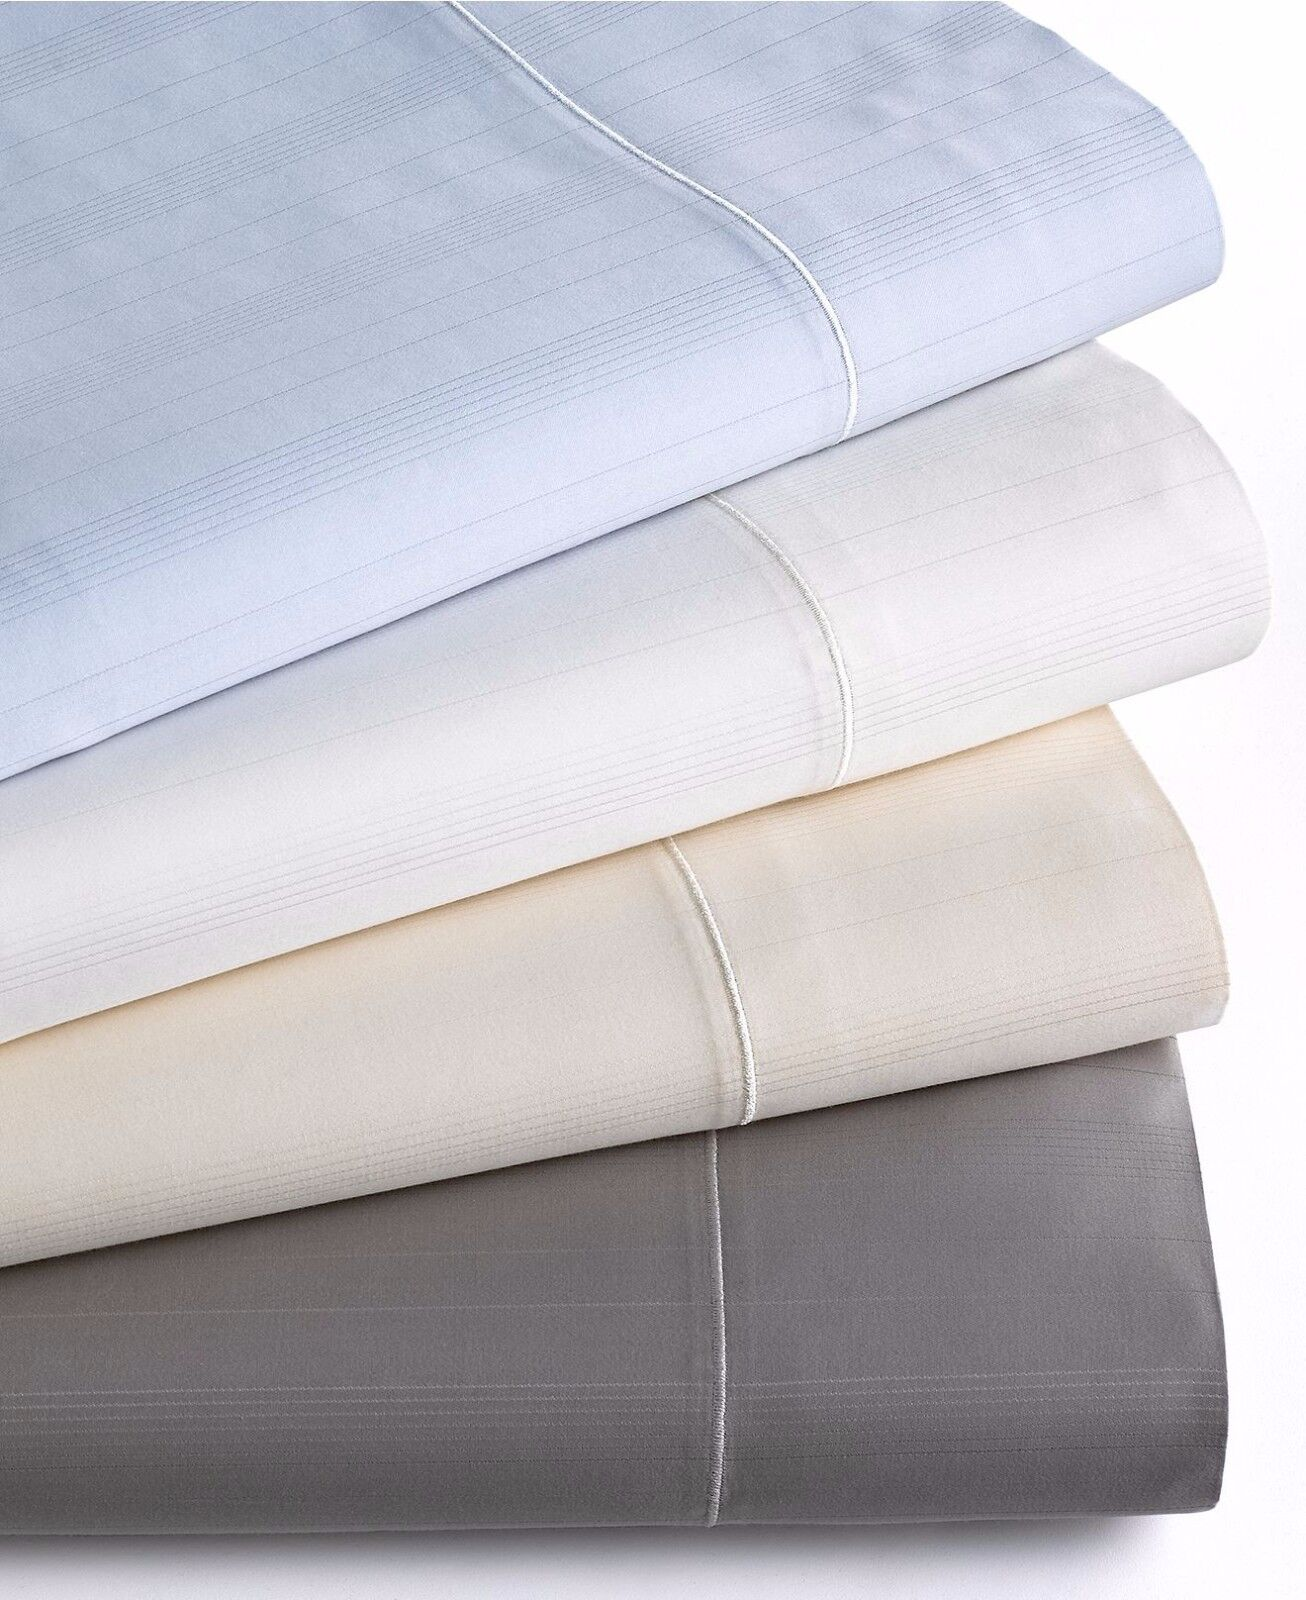 Hotel Collection 700 TC Stripe MicroCotton Queen Fitted Sheet IVORY R584